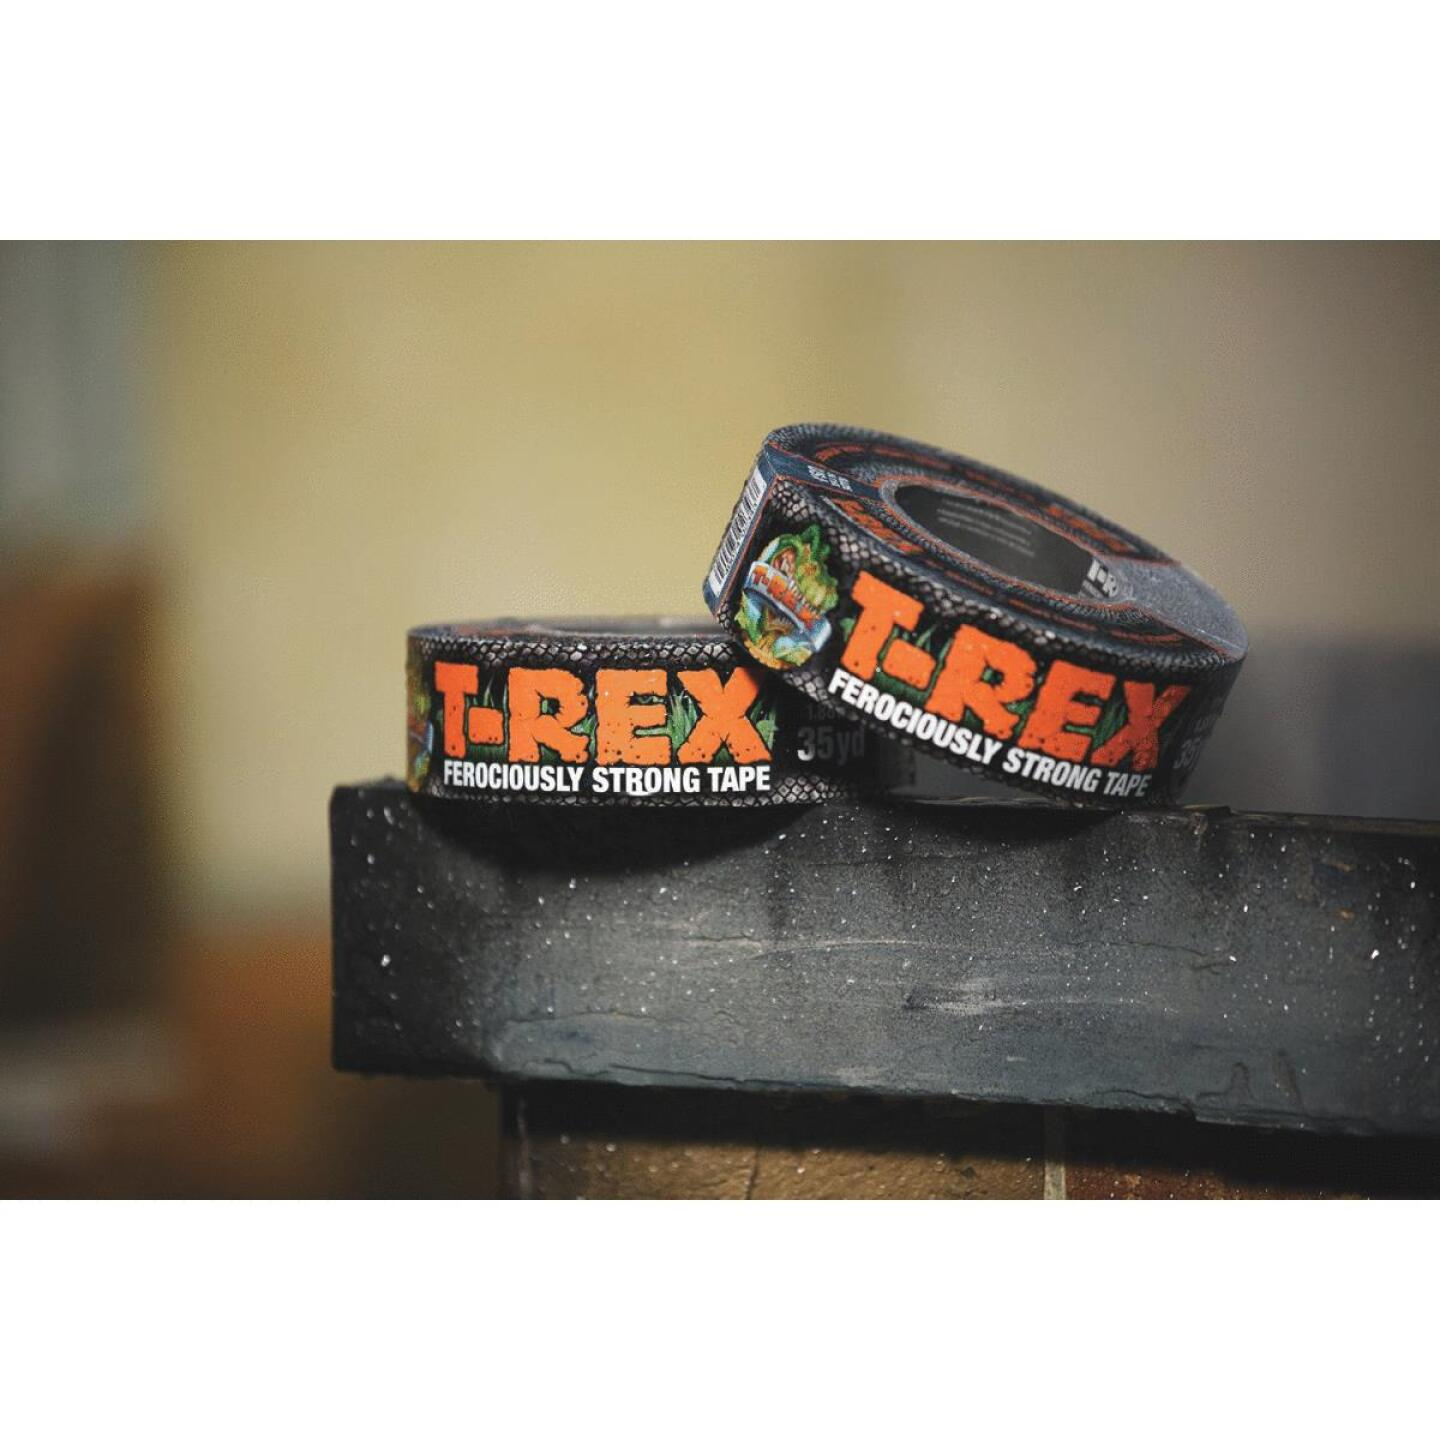 T-REX 1.88 In. x 12 Yd. Duct Tape, Gray Image 2